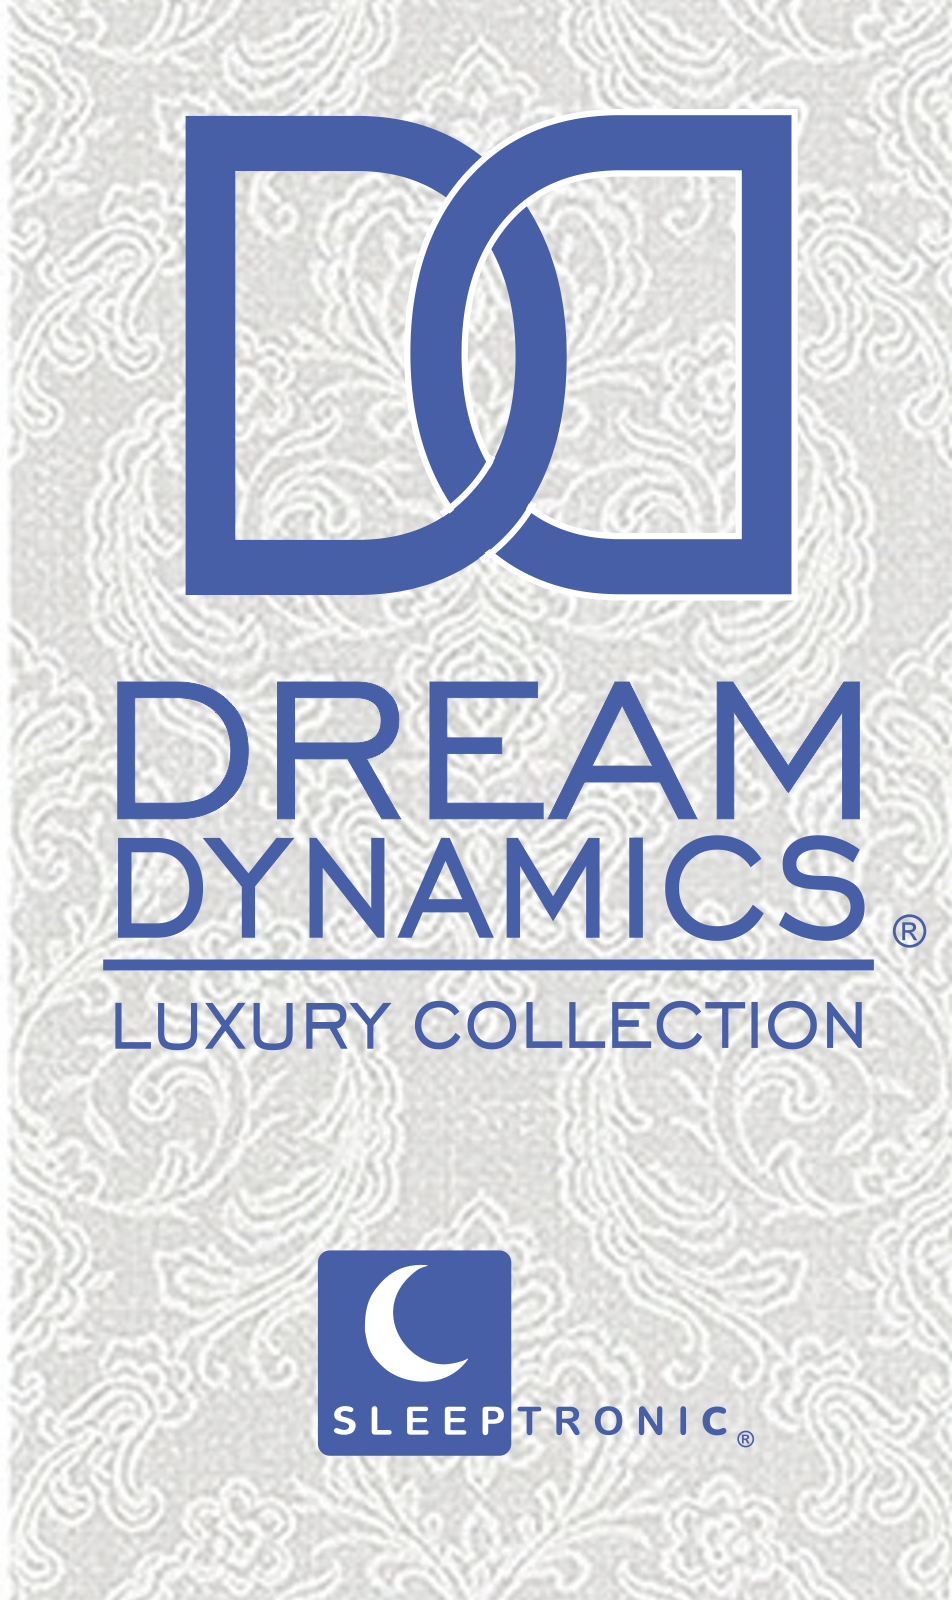 Dream Dynamics Luxury Collection Logo